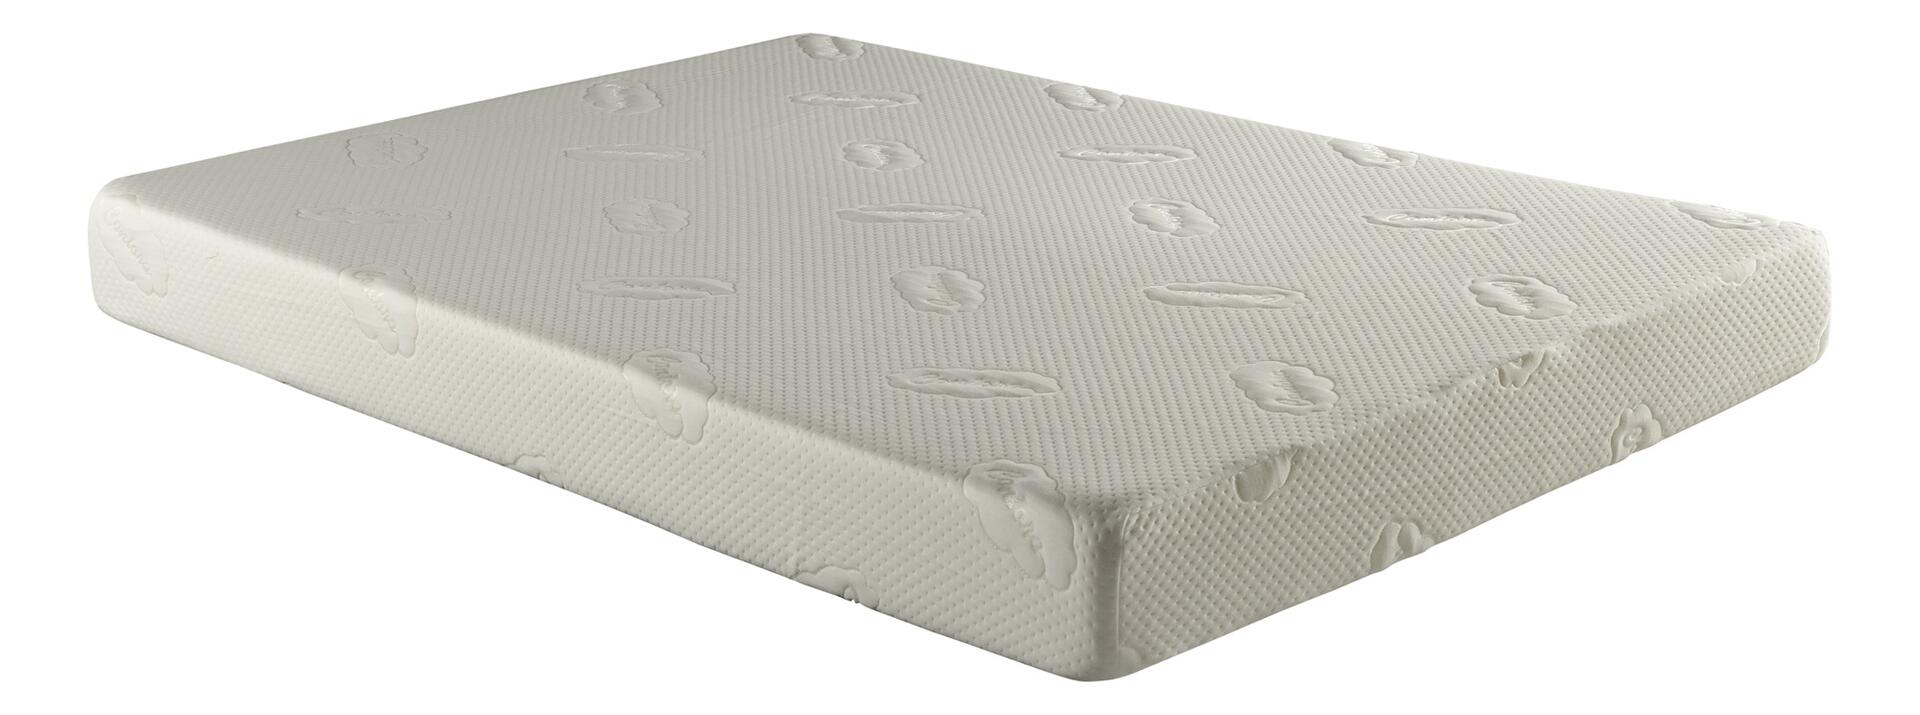 Atlantic Furniture M46102 Twin Size Standard Mattress Appliances Connection